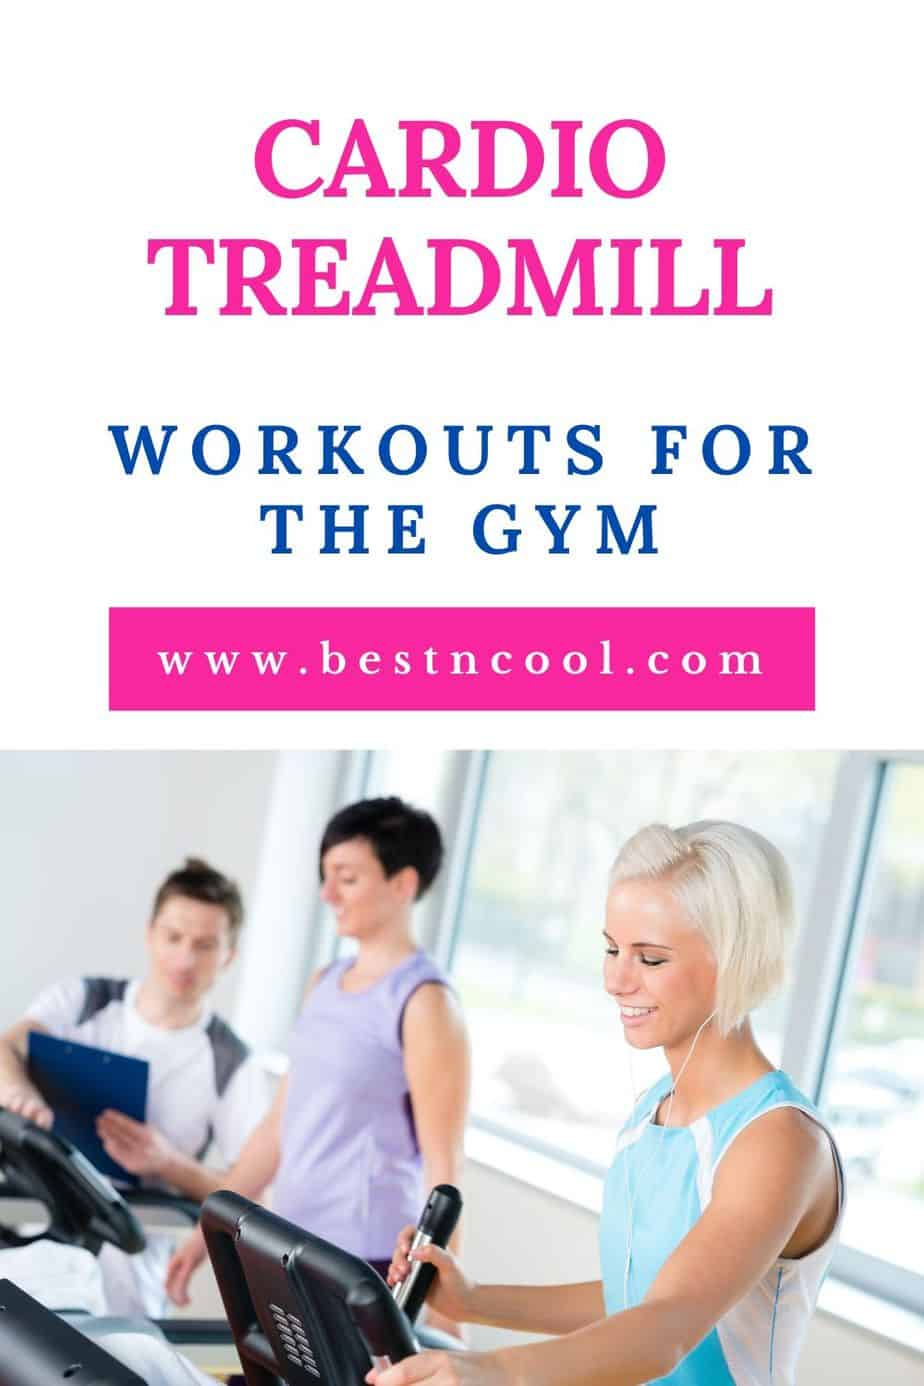 Long distance treadmill workout tips